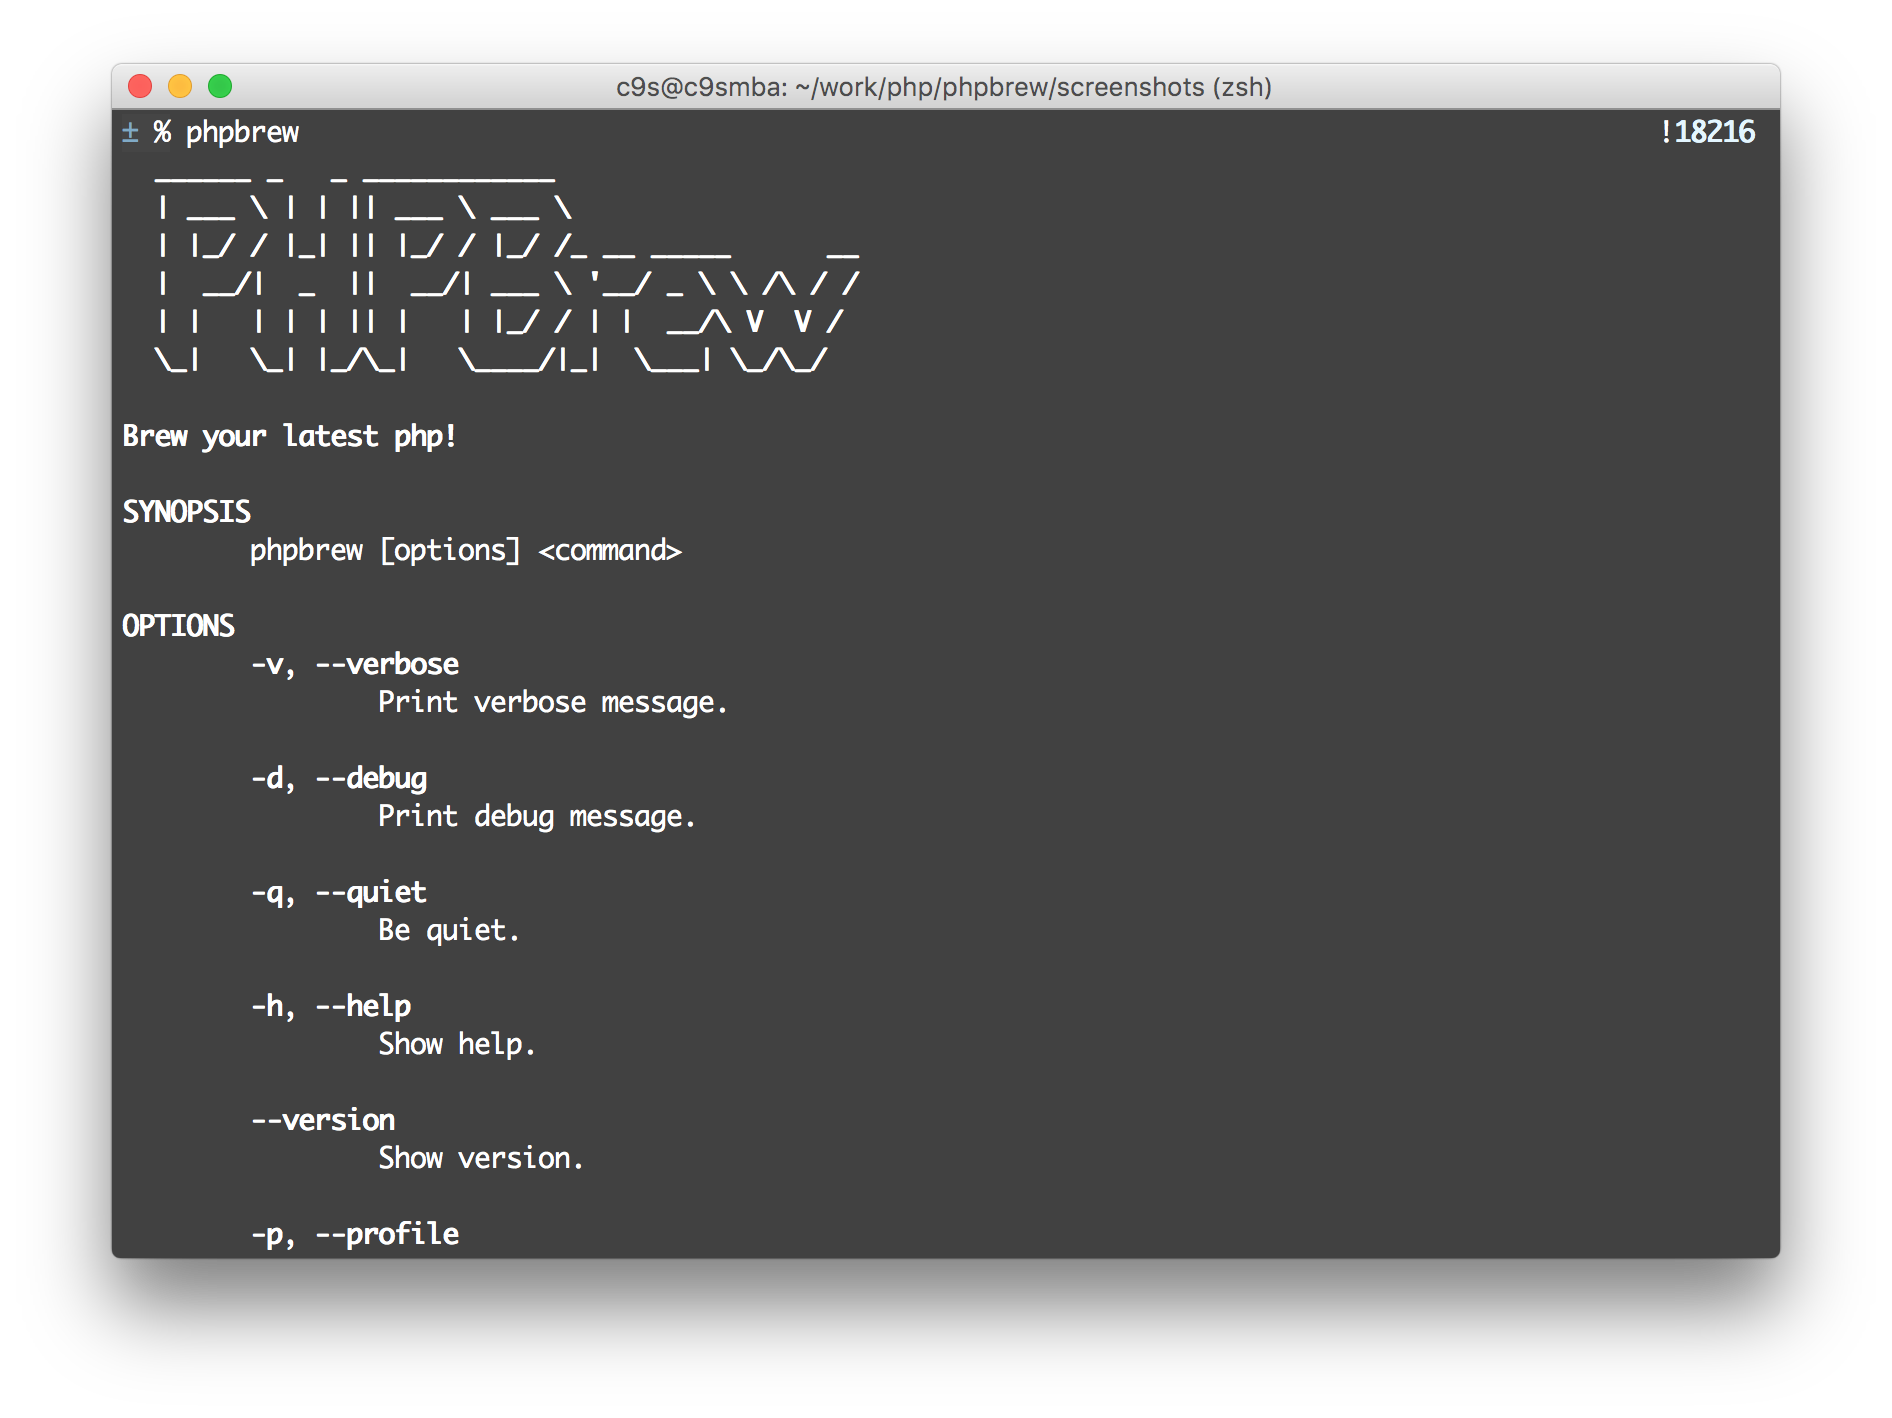 phpbrew